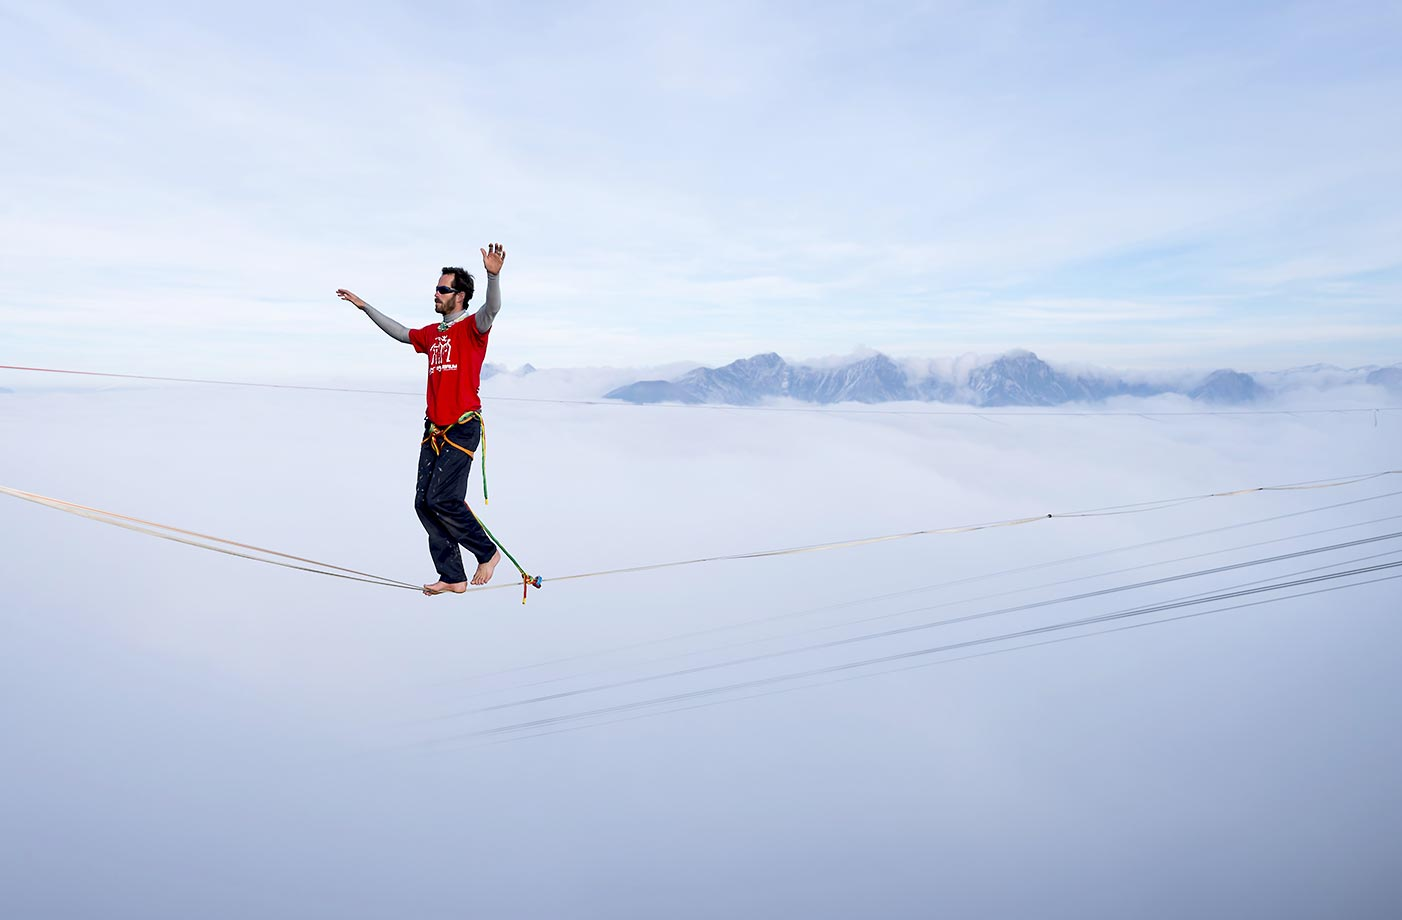 Guillaume Rolland at the Highline Extreme event in Moleson Peak, western Switzerland. Fifty of the European best slackliners compete until Sept. 27, 2015, on six different lines ranging from 45 meters to 495 meters.